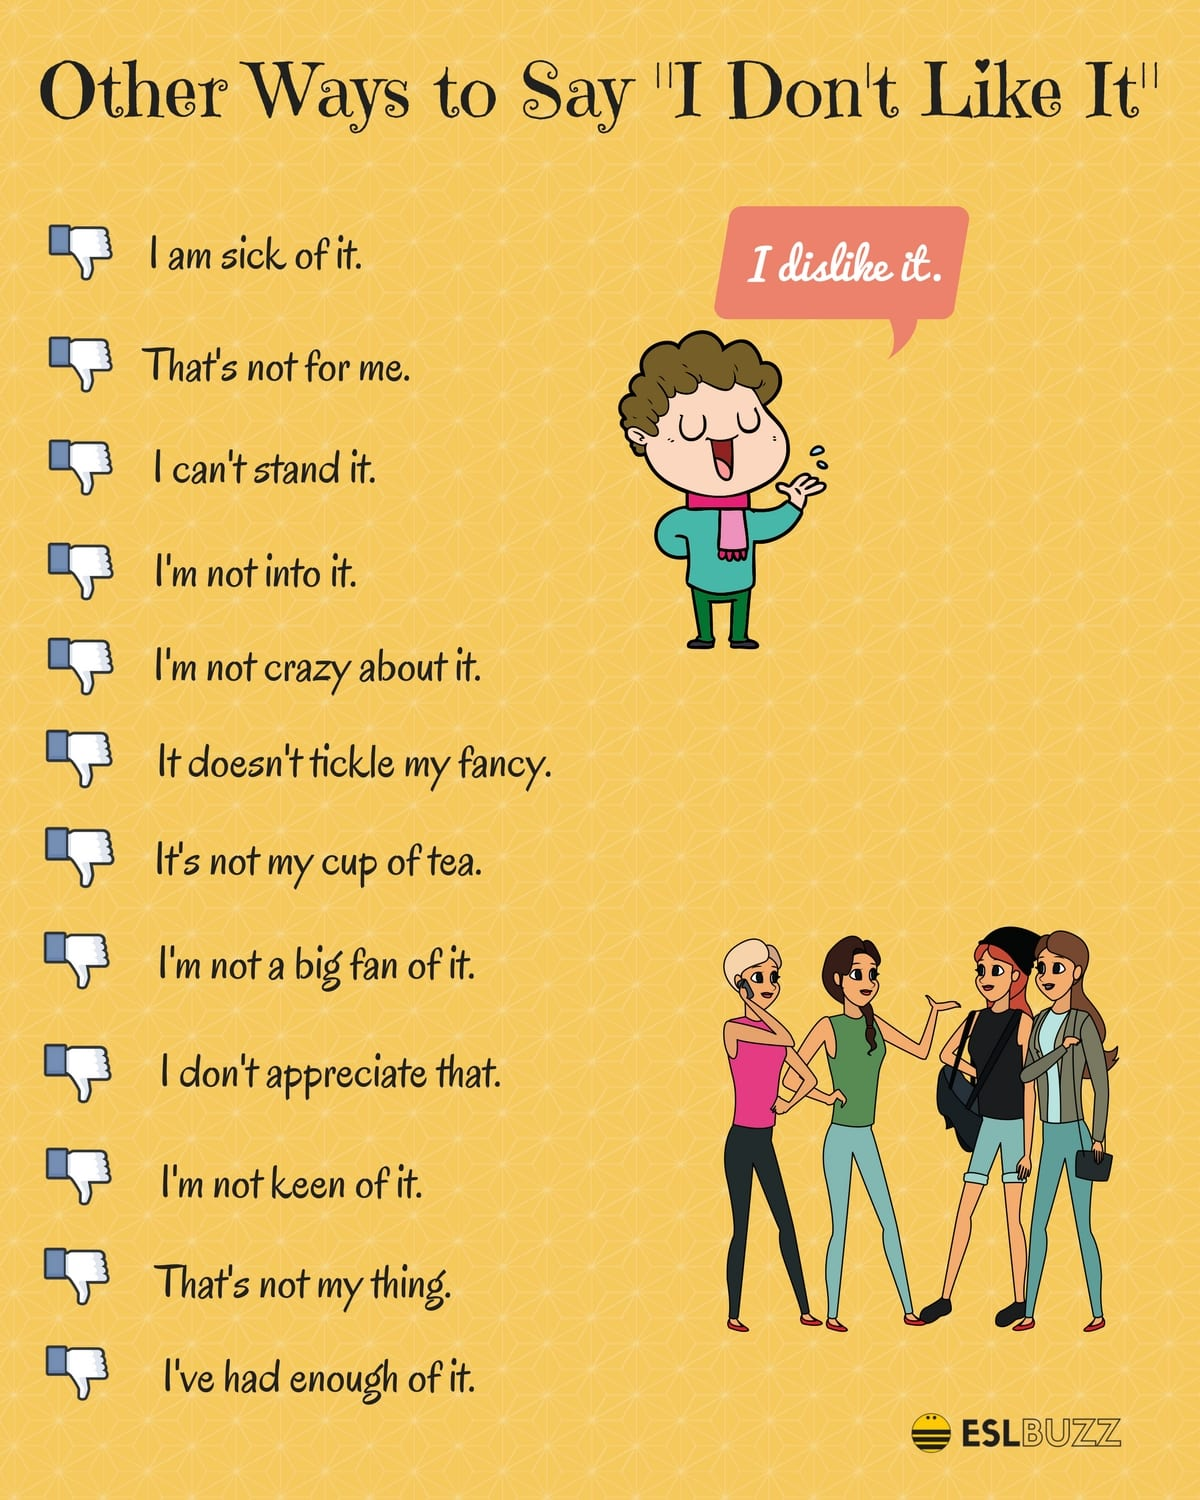 Other Ways to Say I DON'T LIKE IT